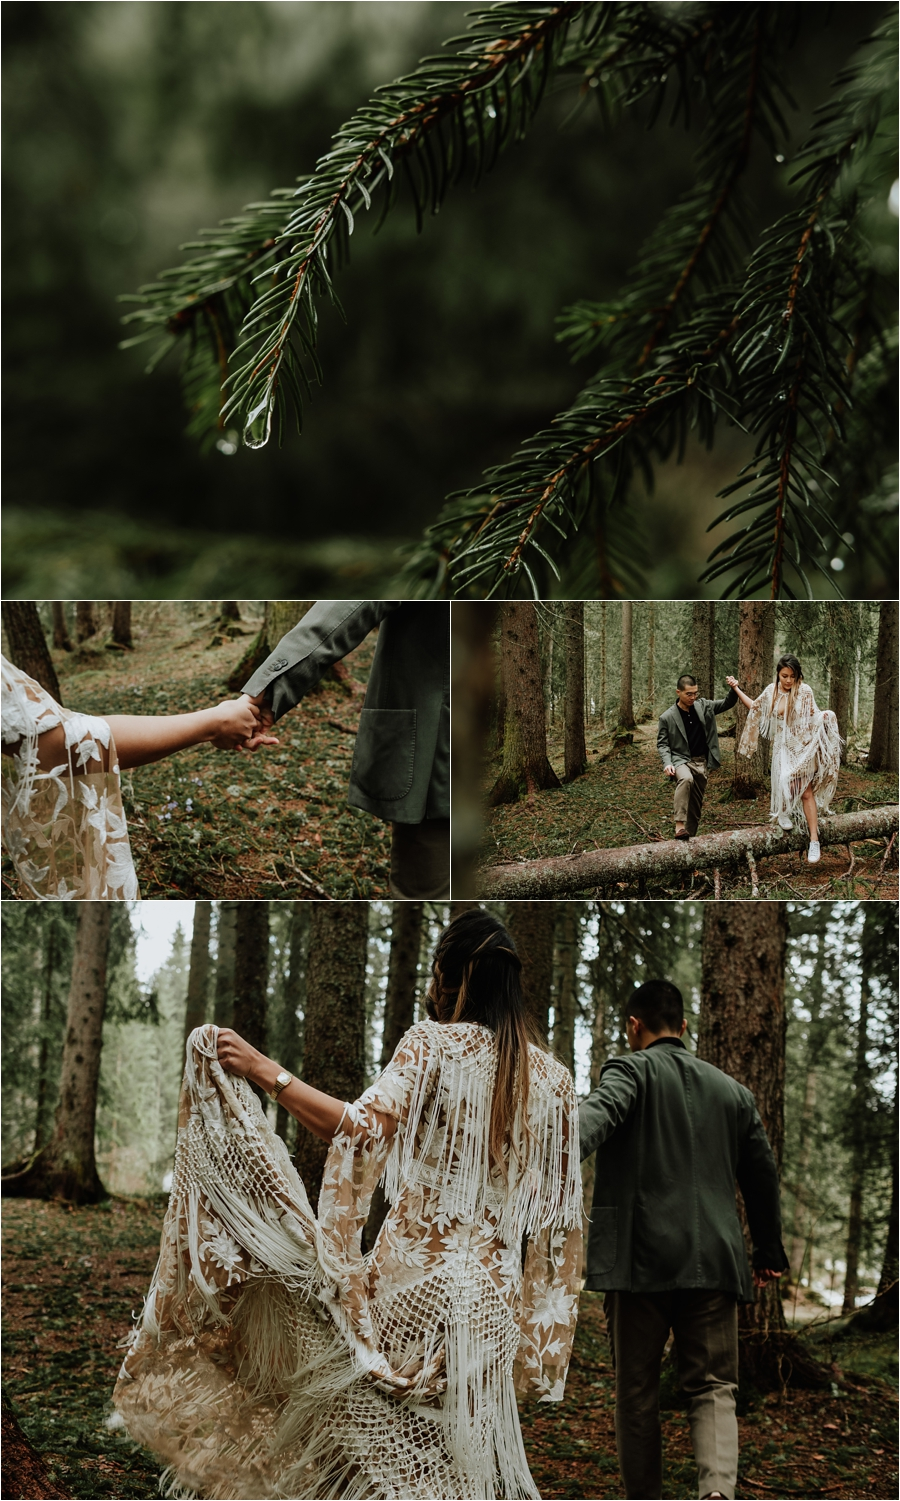 Exploring the forests in the Dolomites - A pre-wedding engagement shoot by Wild Connections Photography